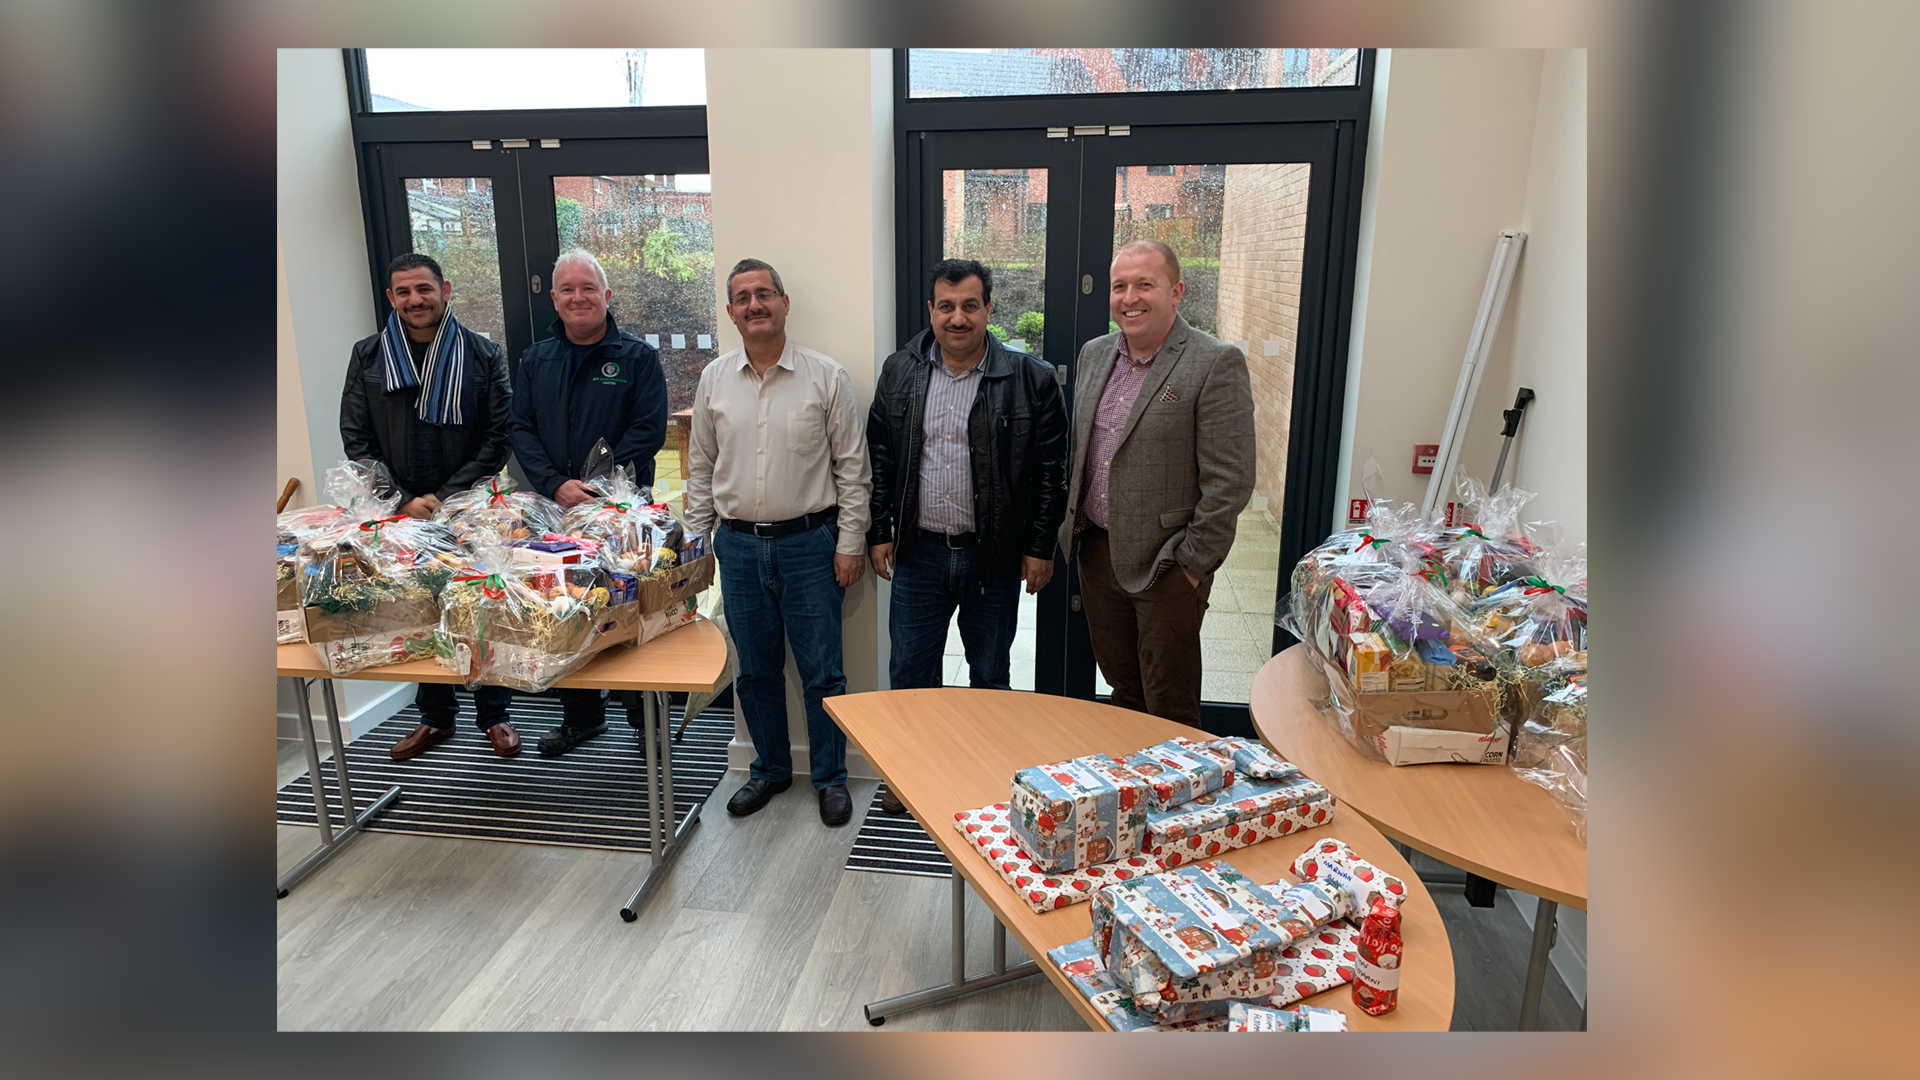 EFT Construction Kindly Donate Hamper Packs For Syrian Families This Christmas Season!